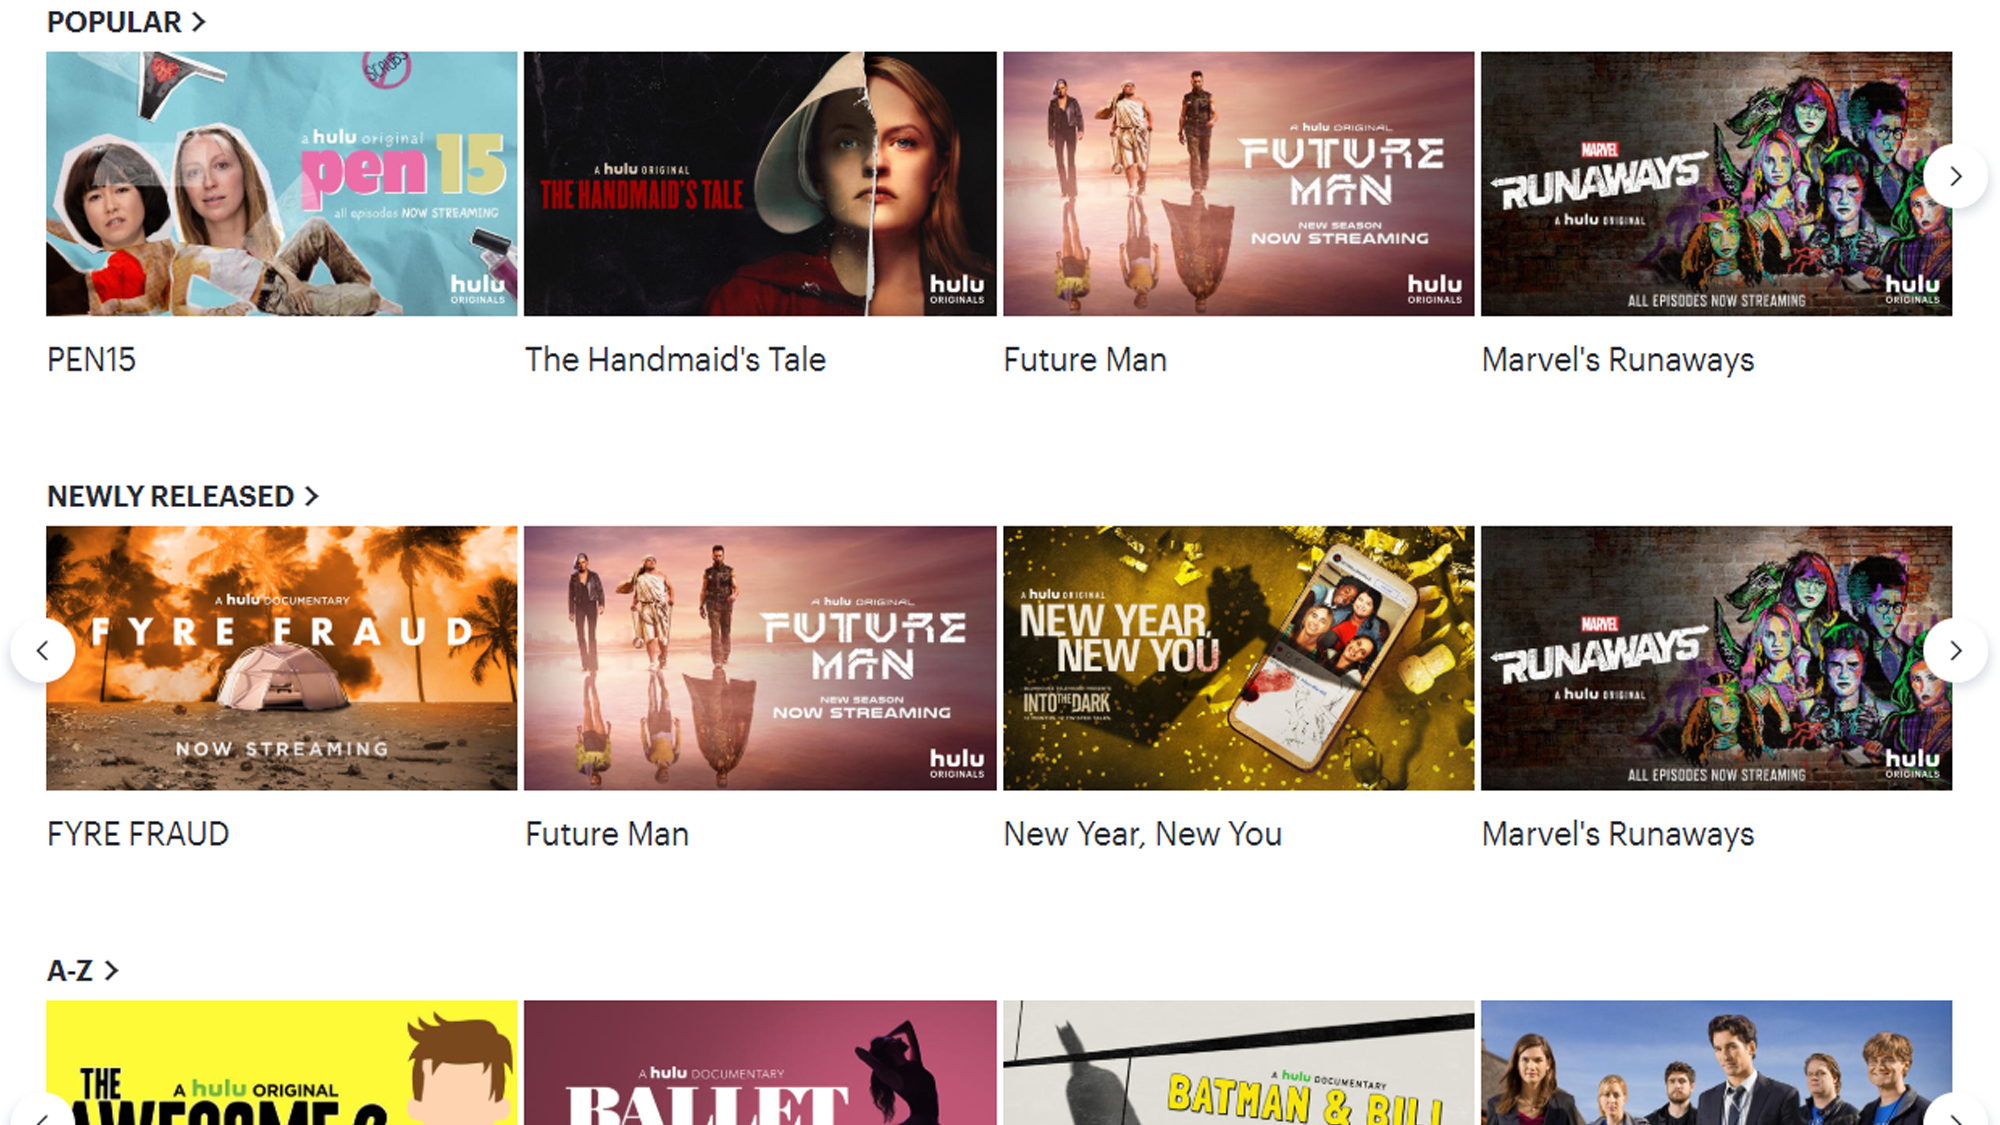 Hulu + Live TV offers the best selection of original programming and on-demand streaming.